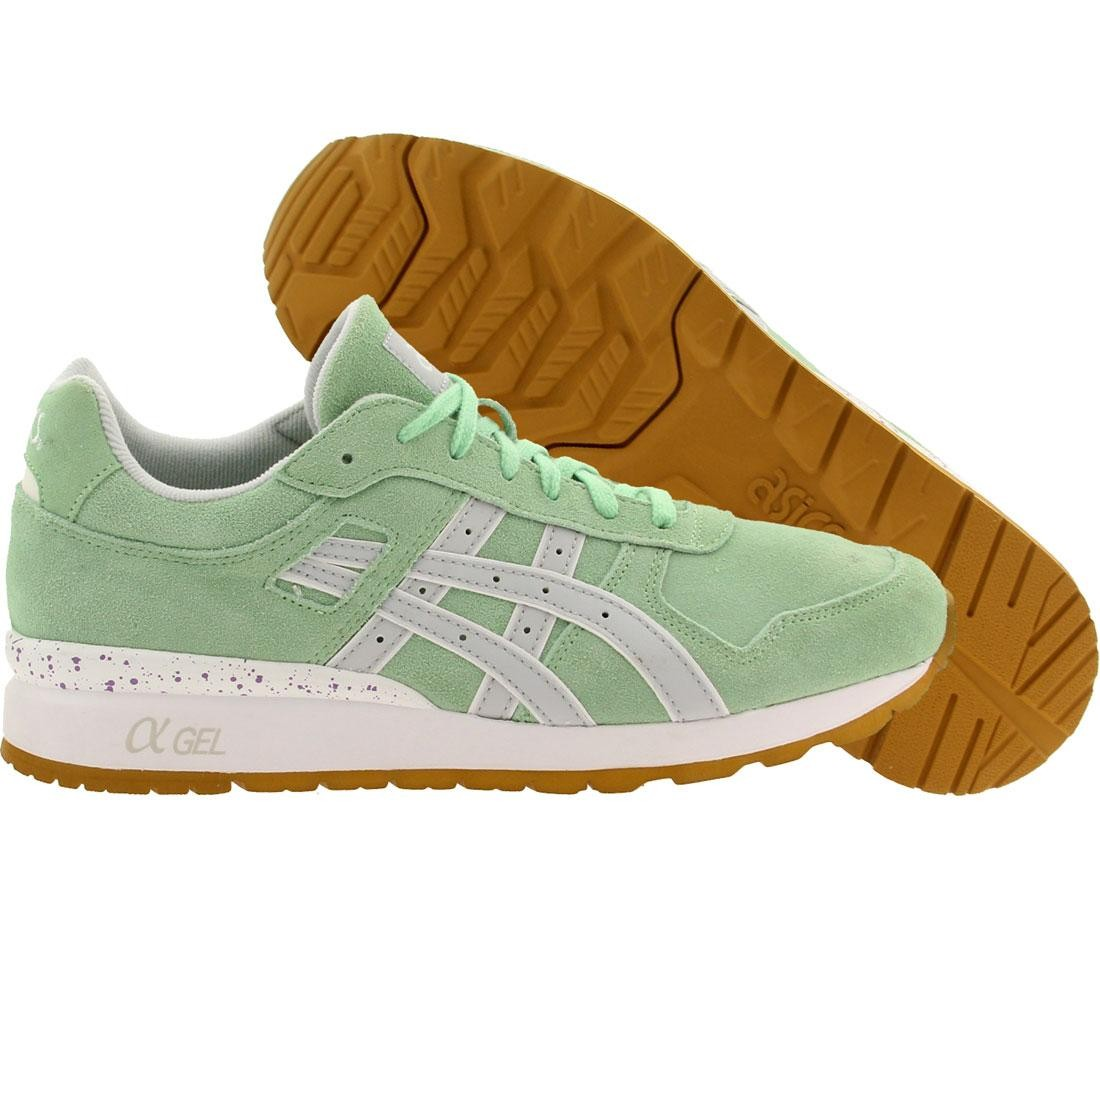 7d19fecb7118 Asics Men GT-II - Easter Full Bloom Pack green green ash soft gray